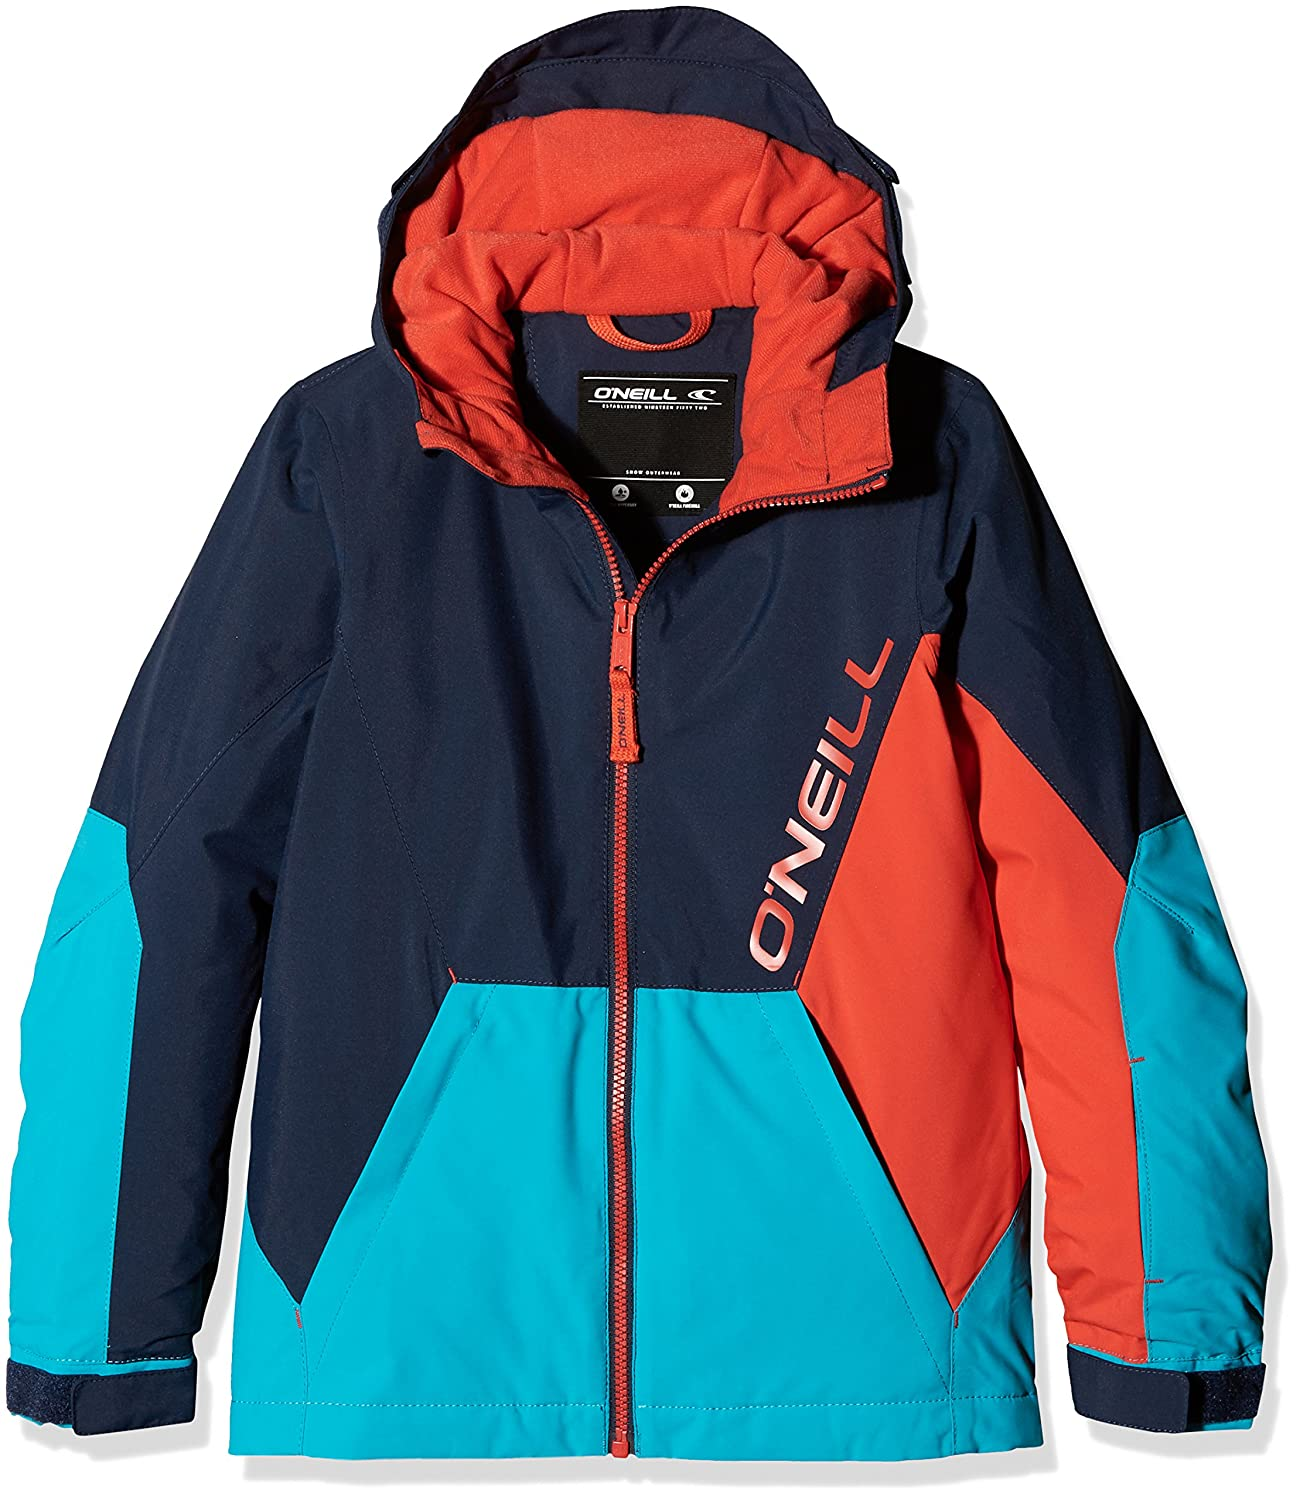 O Neill Boys  Statement Ski Snowboard Jacket  Amazon.co.uk  Sports    Outdoors 092367d34